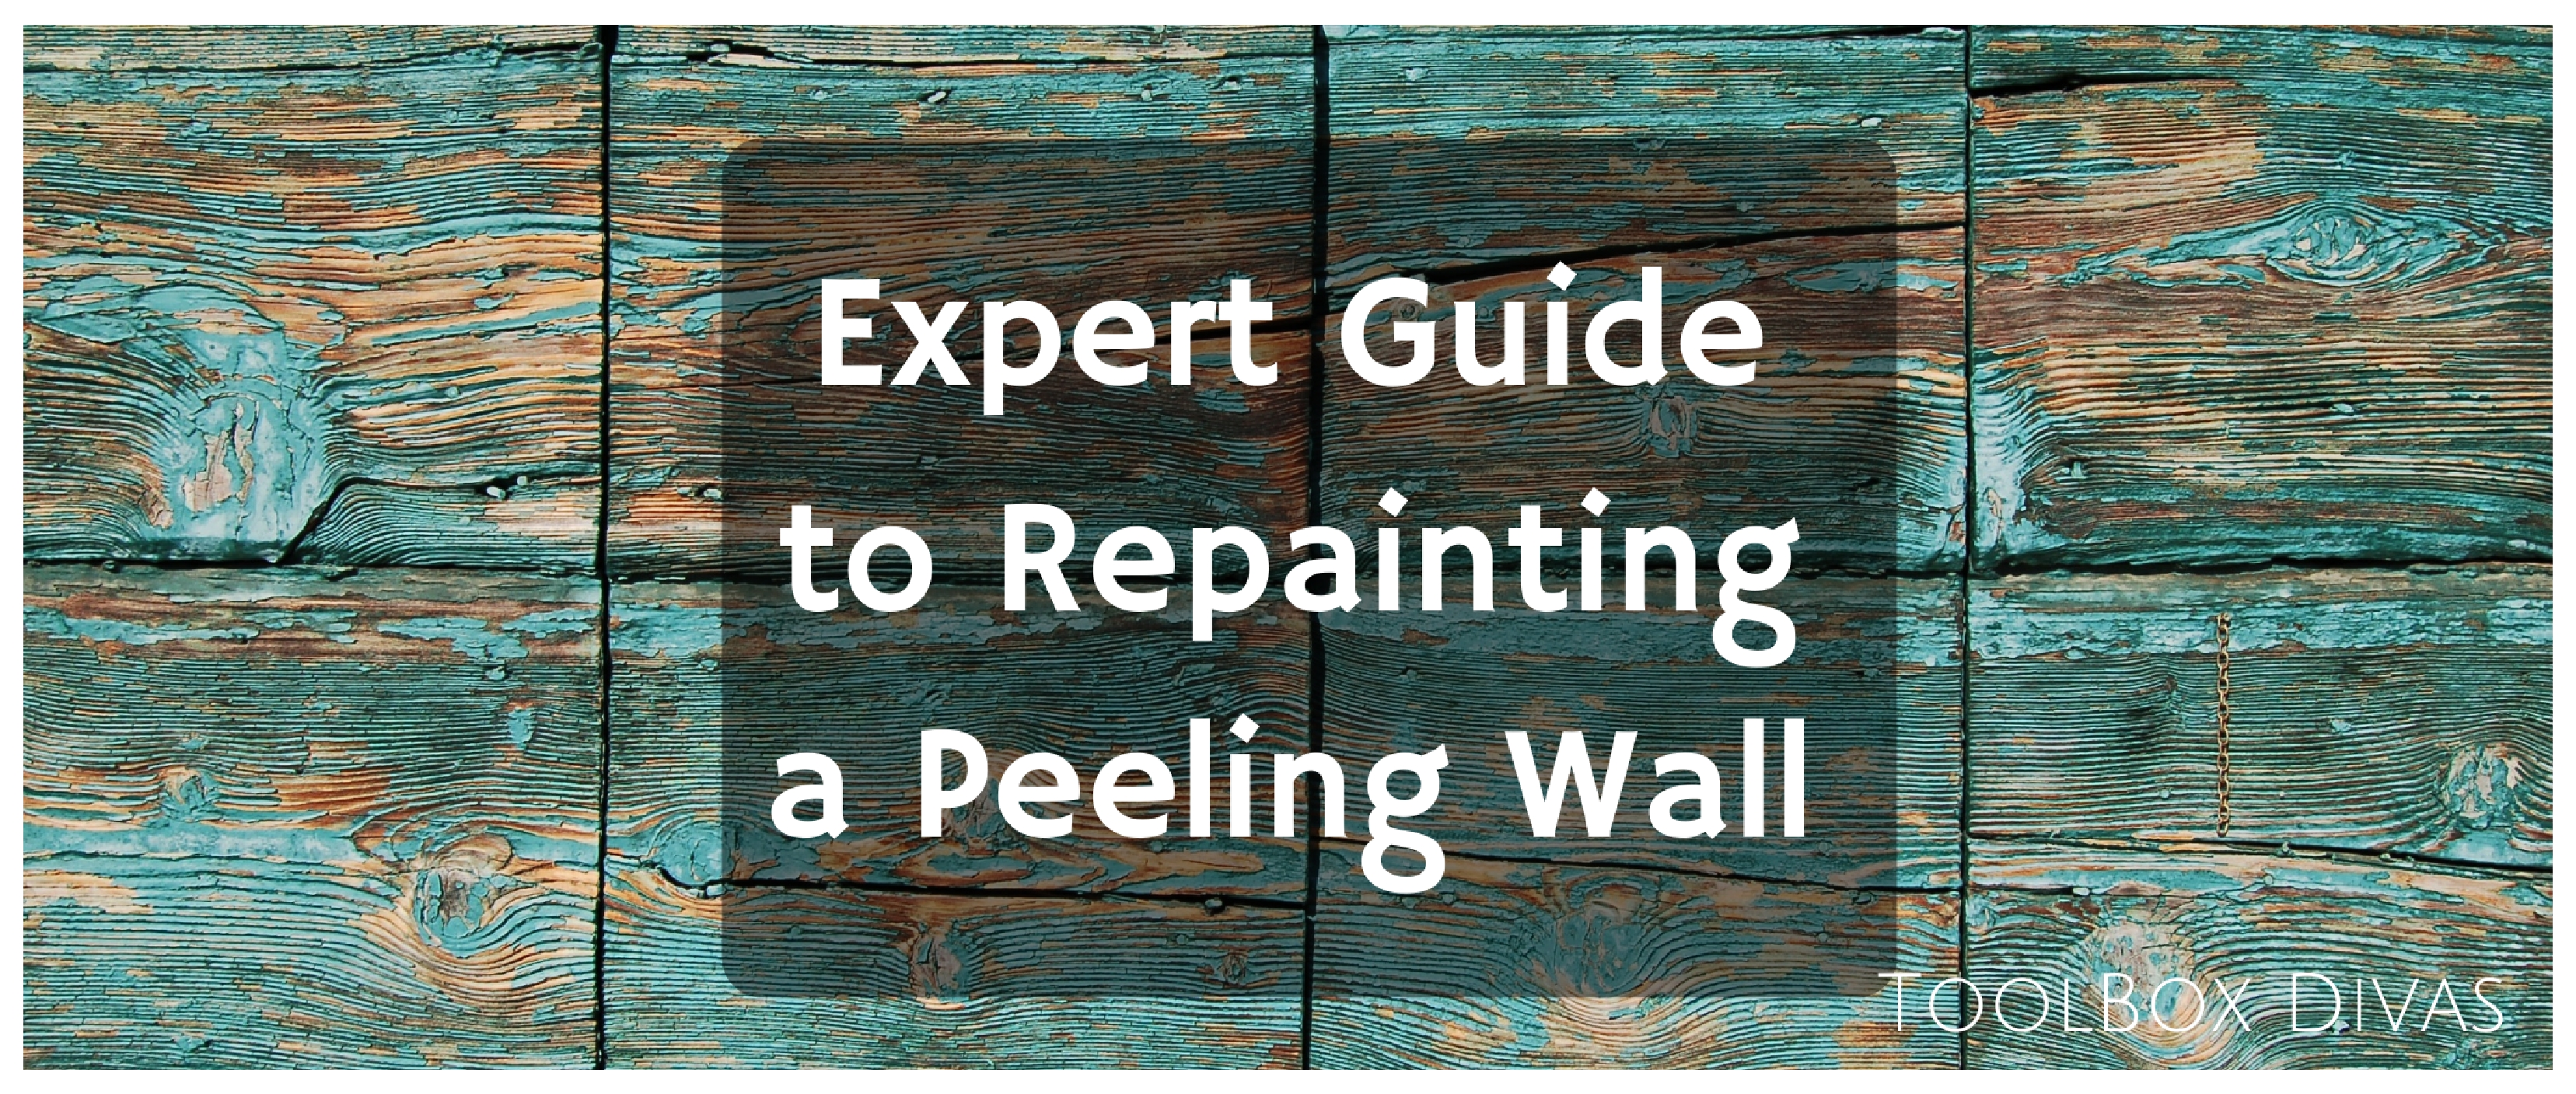 Expert Guide To Repainting A Peeling Wall Toolbox Divas